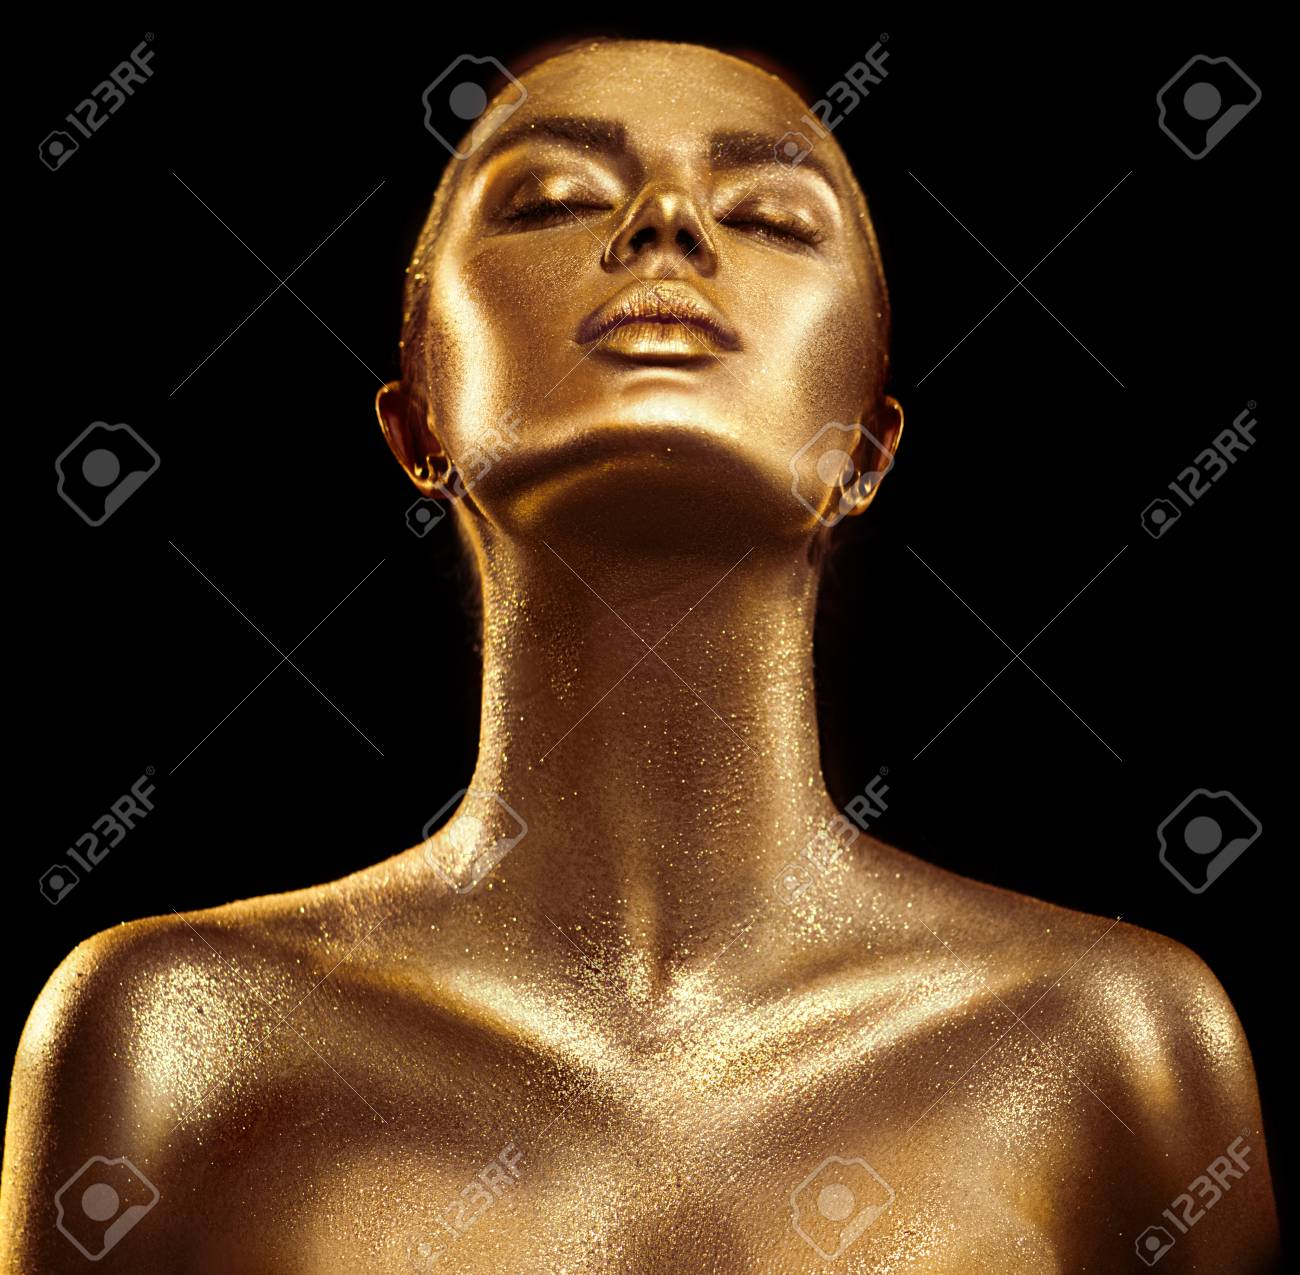 Fashion art golden skin woman portrait closeup. Gold, jewelry, accessories. Model girl with golden glamour shiny makeup - 98589011